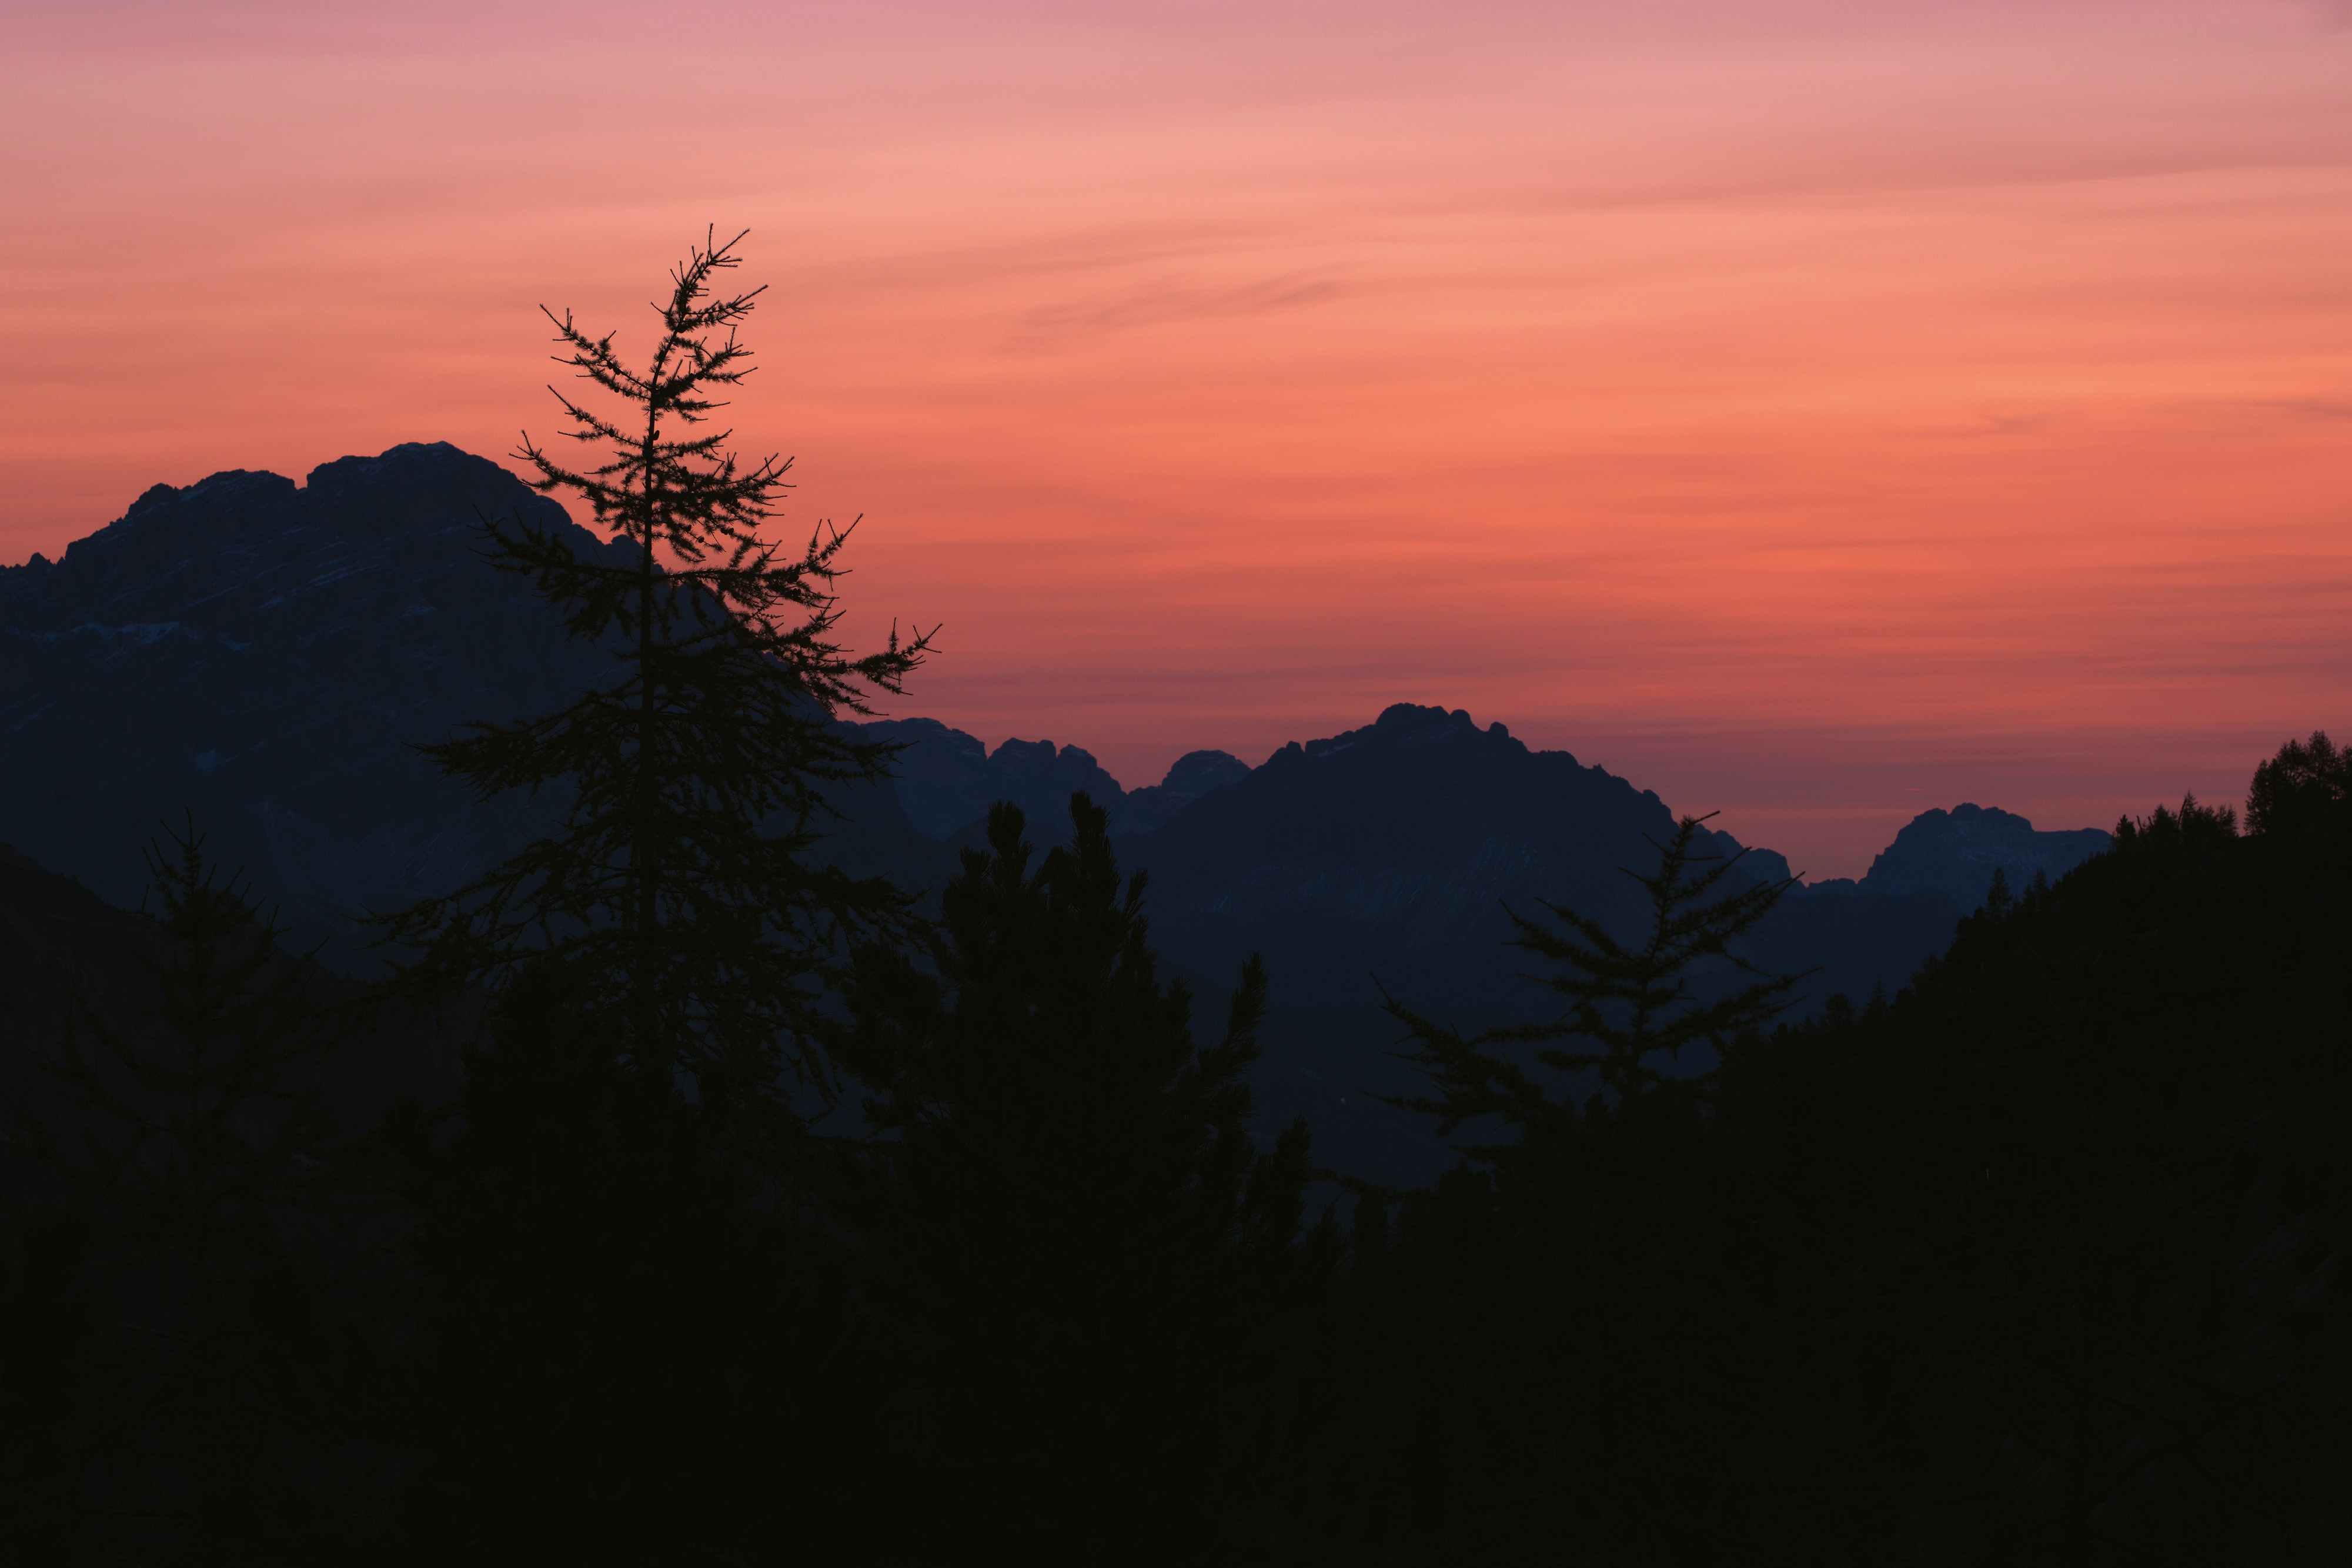 silhouette photo of trees and mountain at golden hour